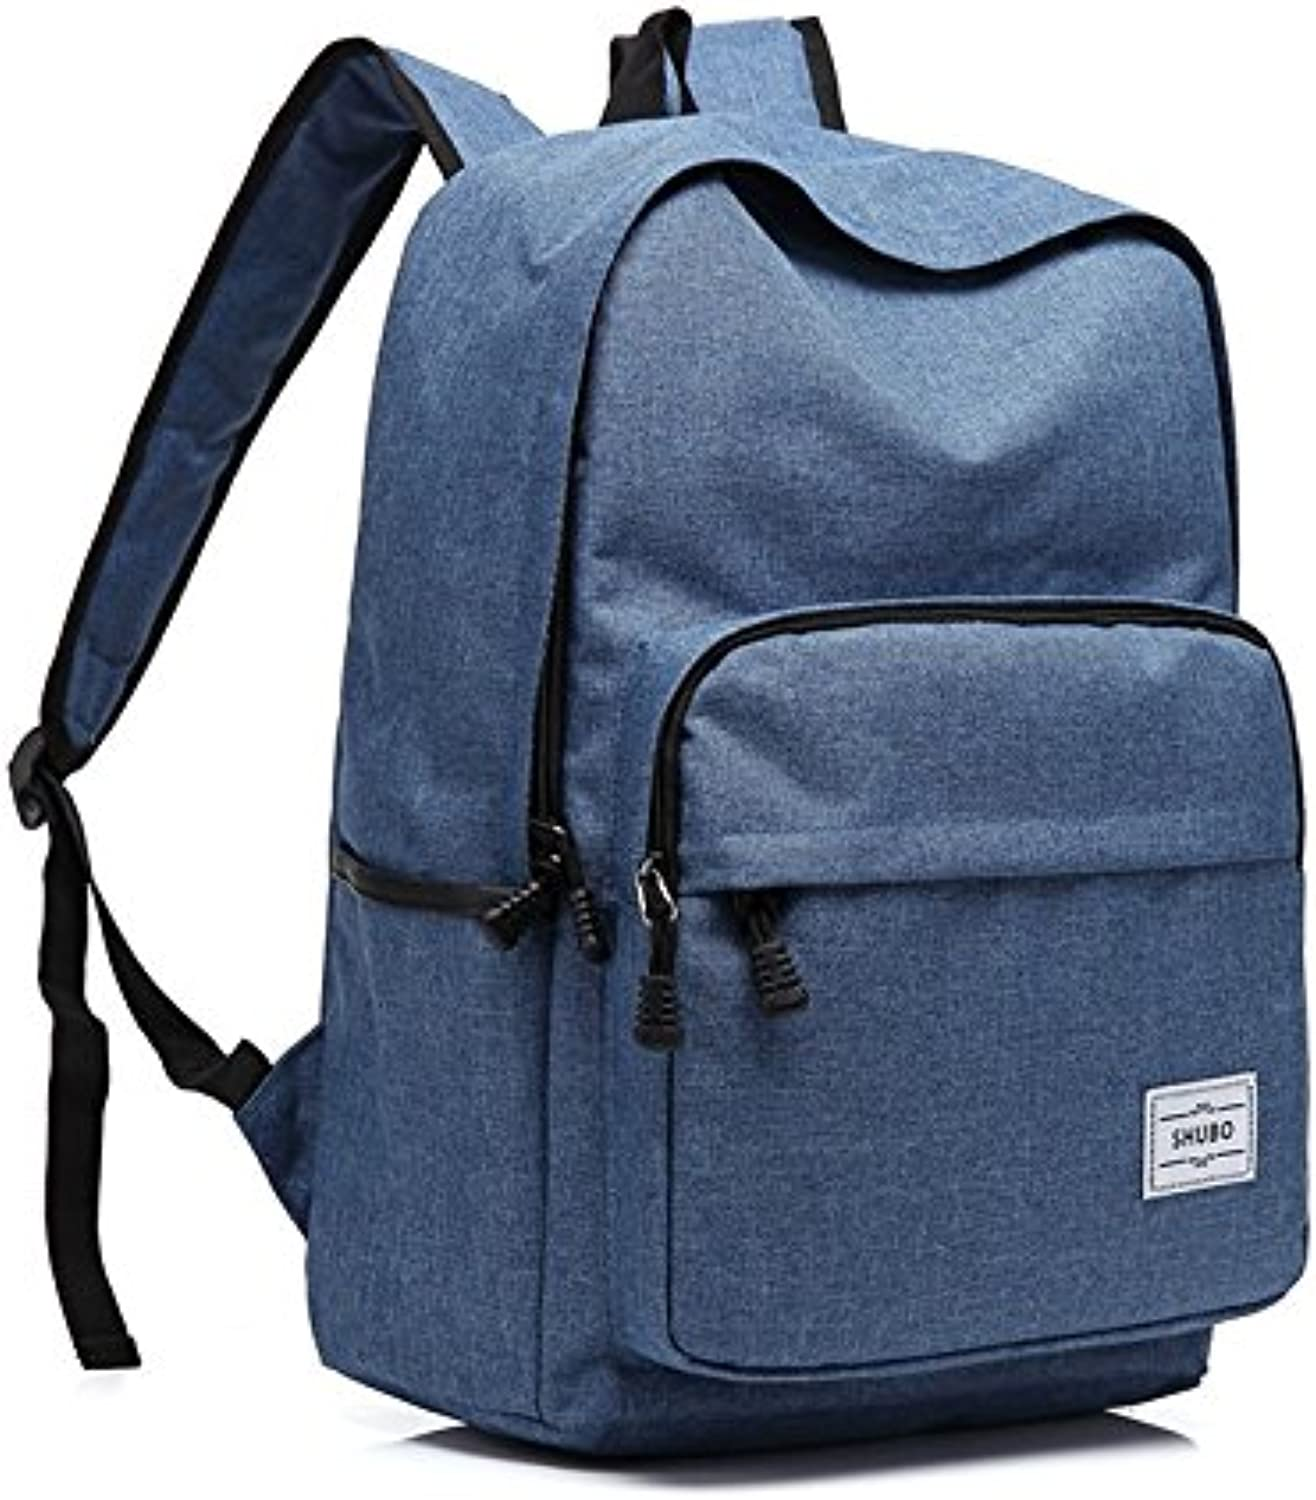 Men's and Women's Travel Bags Korean Youth AntiTheft Backpack Fashion Tide Casual Shoulder Bag 29cm14cm44cm, bluee